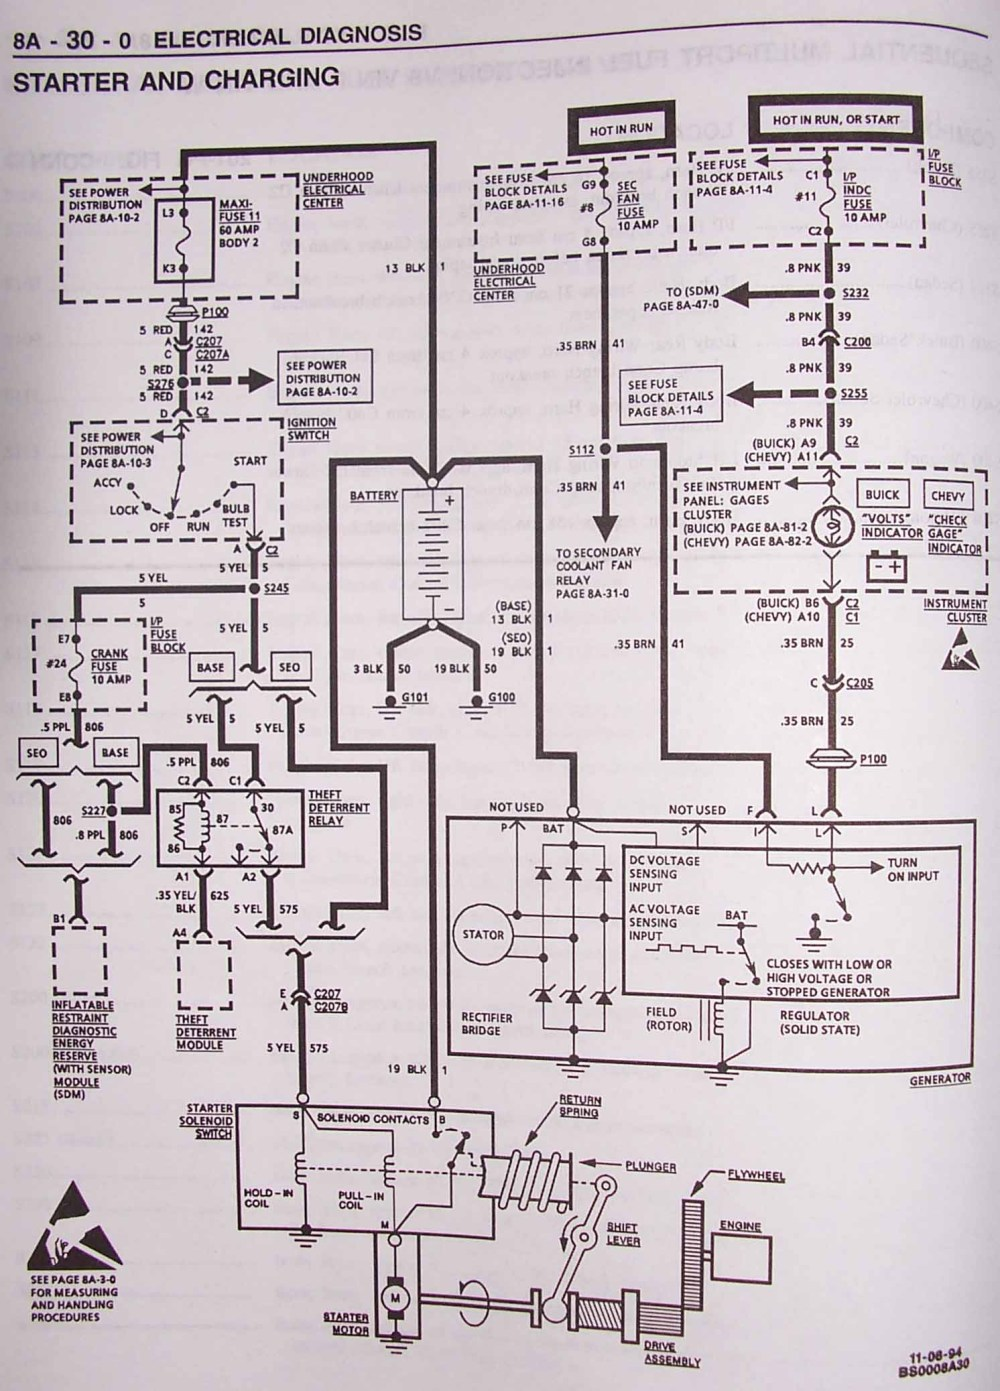 medium resolution of 97 camaro wiring diagram wiring diagram97 camaro wiring diagrams wiring diagram sample97 camaro wiring diagrams wiring